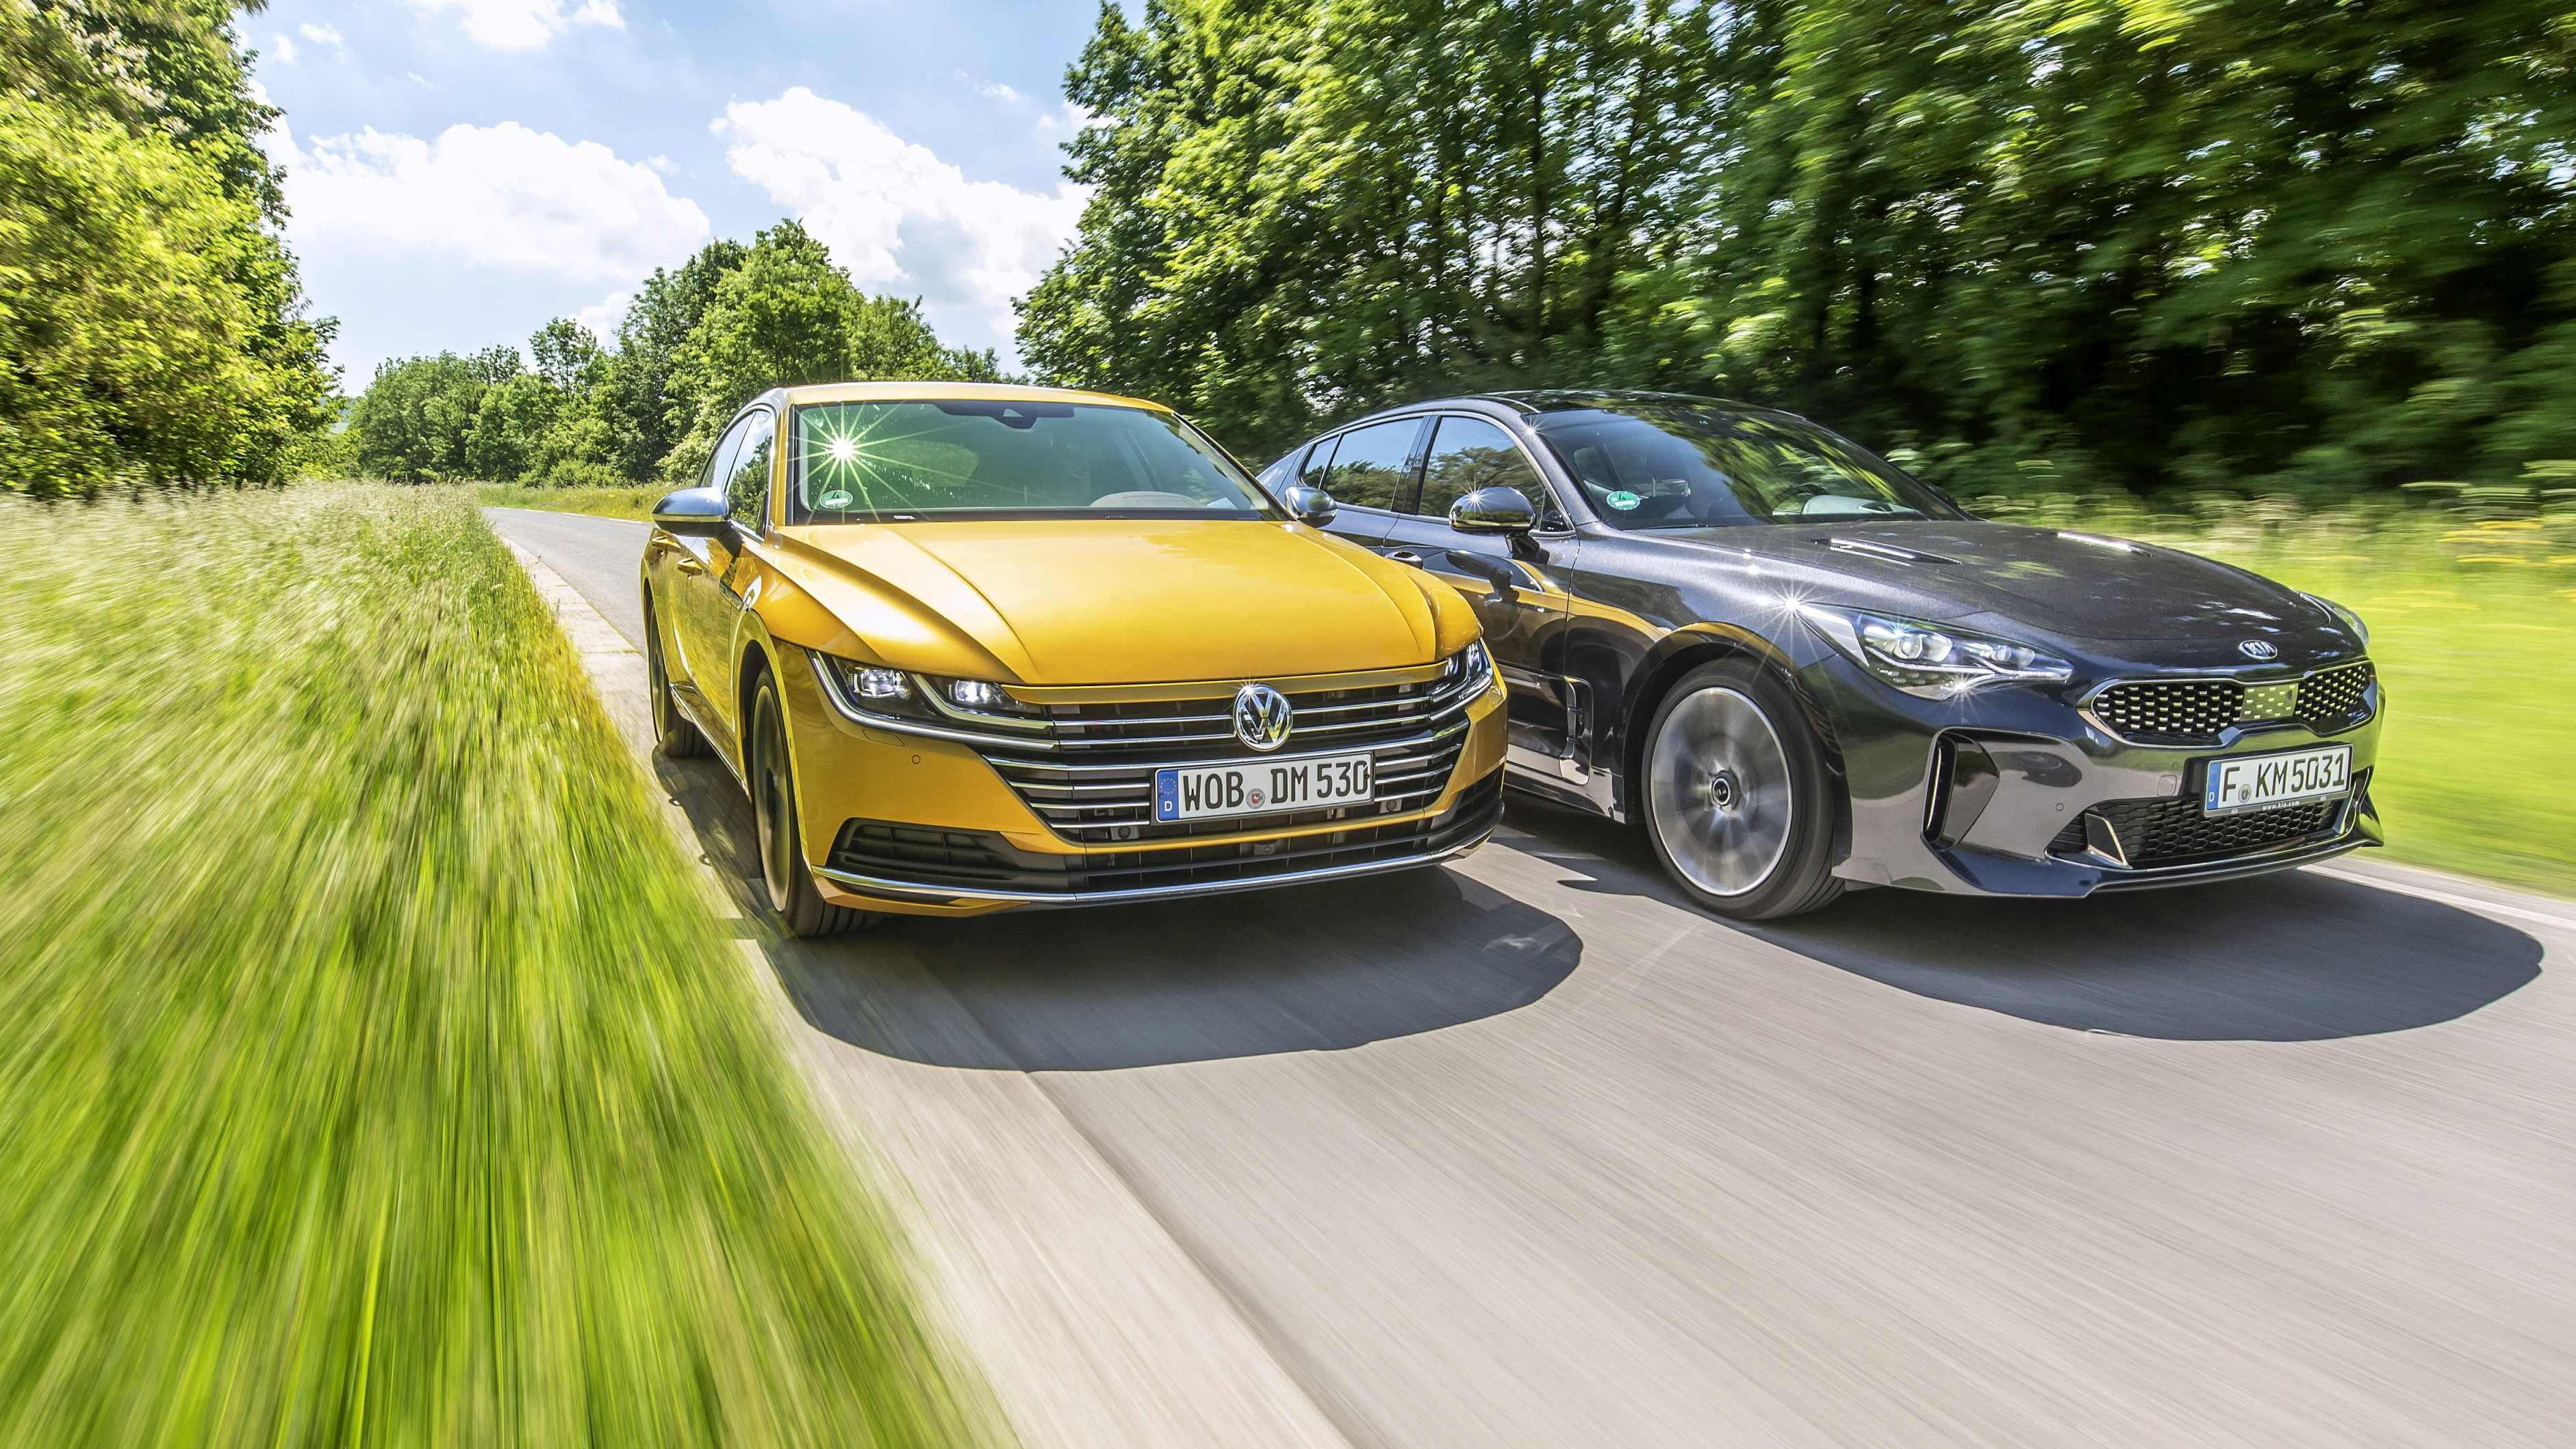 Image for Usporedni test Kia Stinger 2.0 T-GDI vs. VW Arteon 2.0 TSI 4Motion